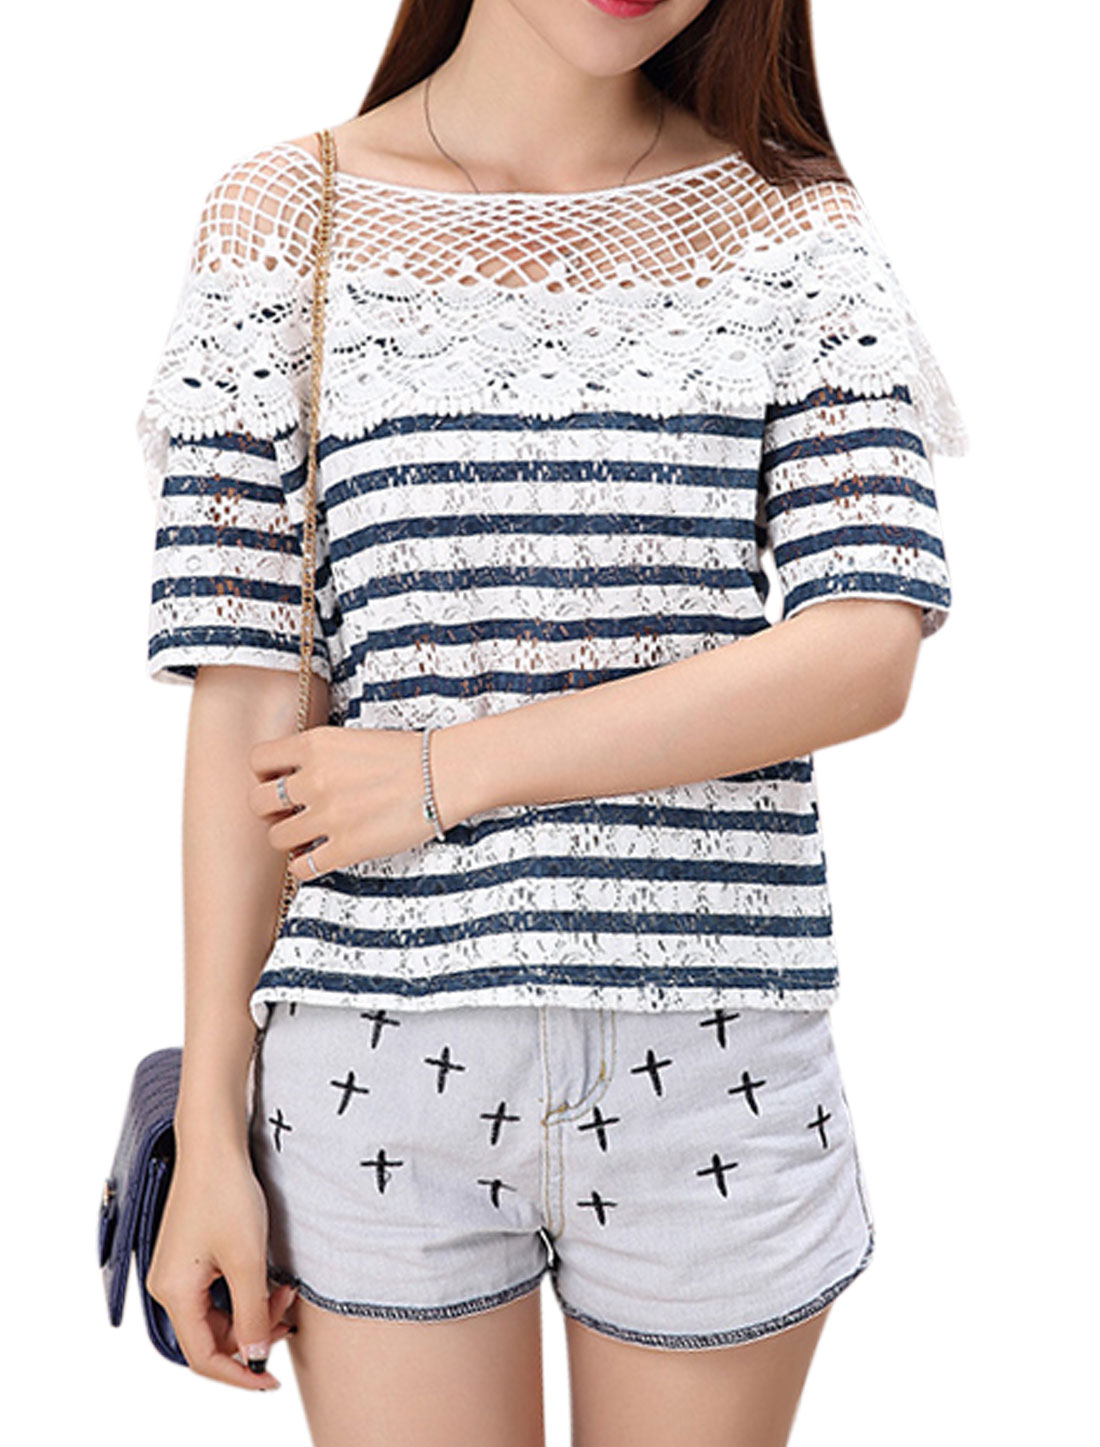 Woman Stripes Hollow Out Crochet Design Elbow Sleeves Lace Blouse Off White Dark Blue XS